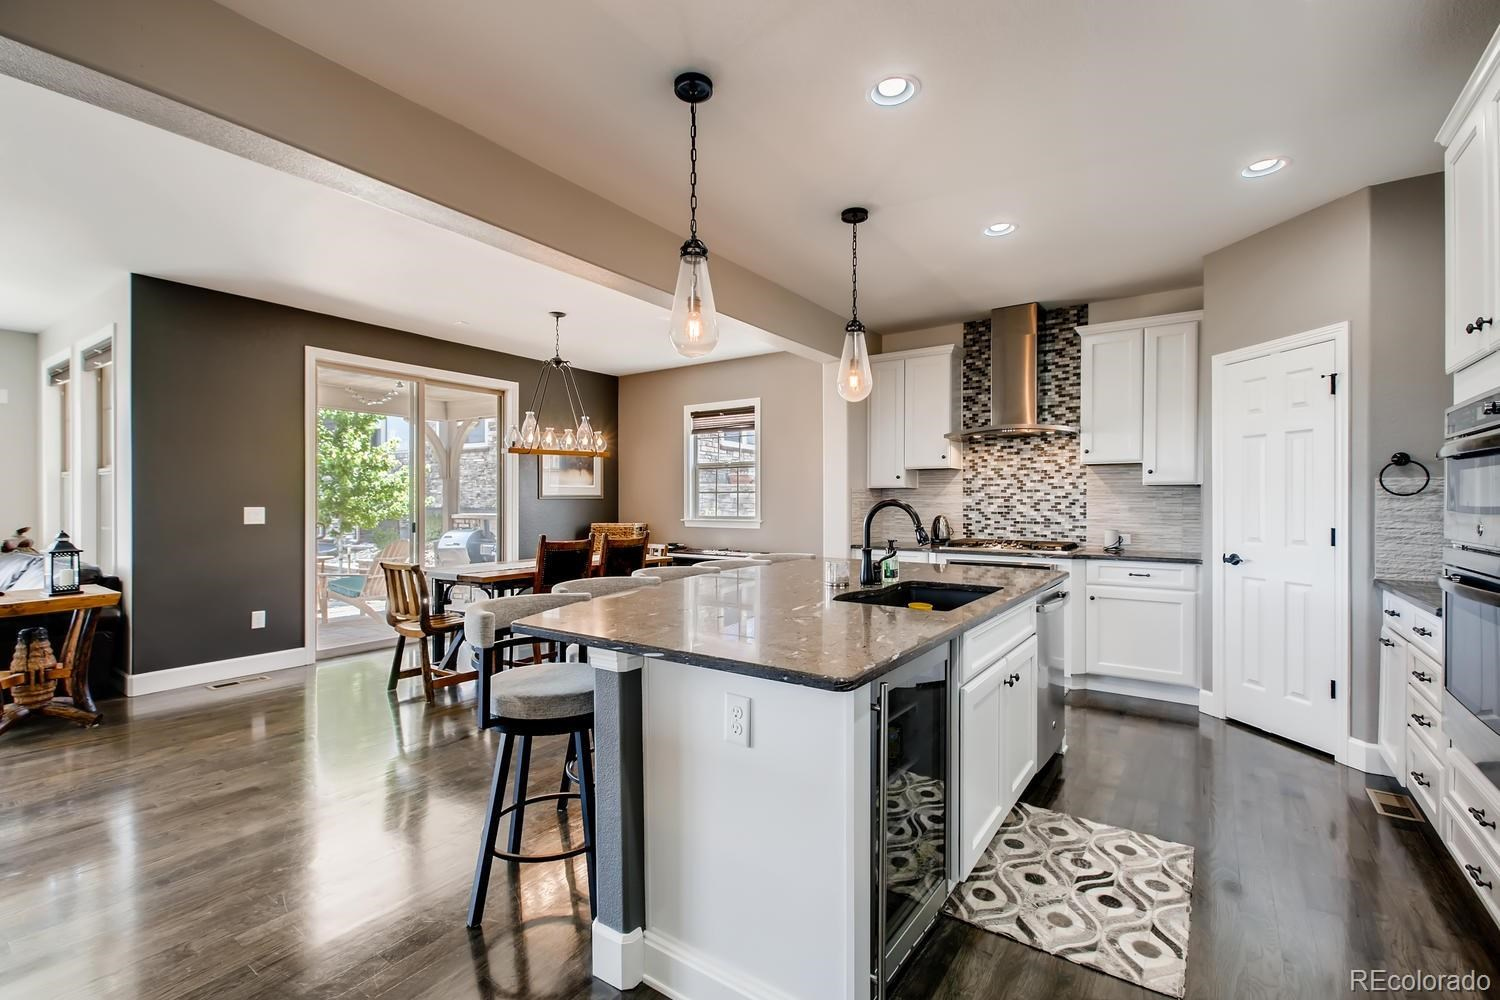 MLS# 5689224 - 10 - 10754 Greycliffe Drive, Highlands Ranch, CO 80126